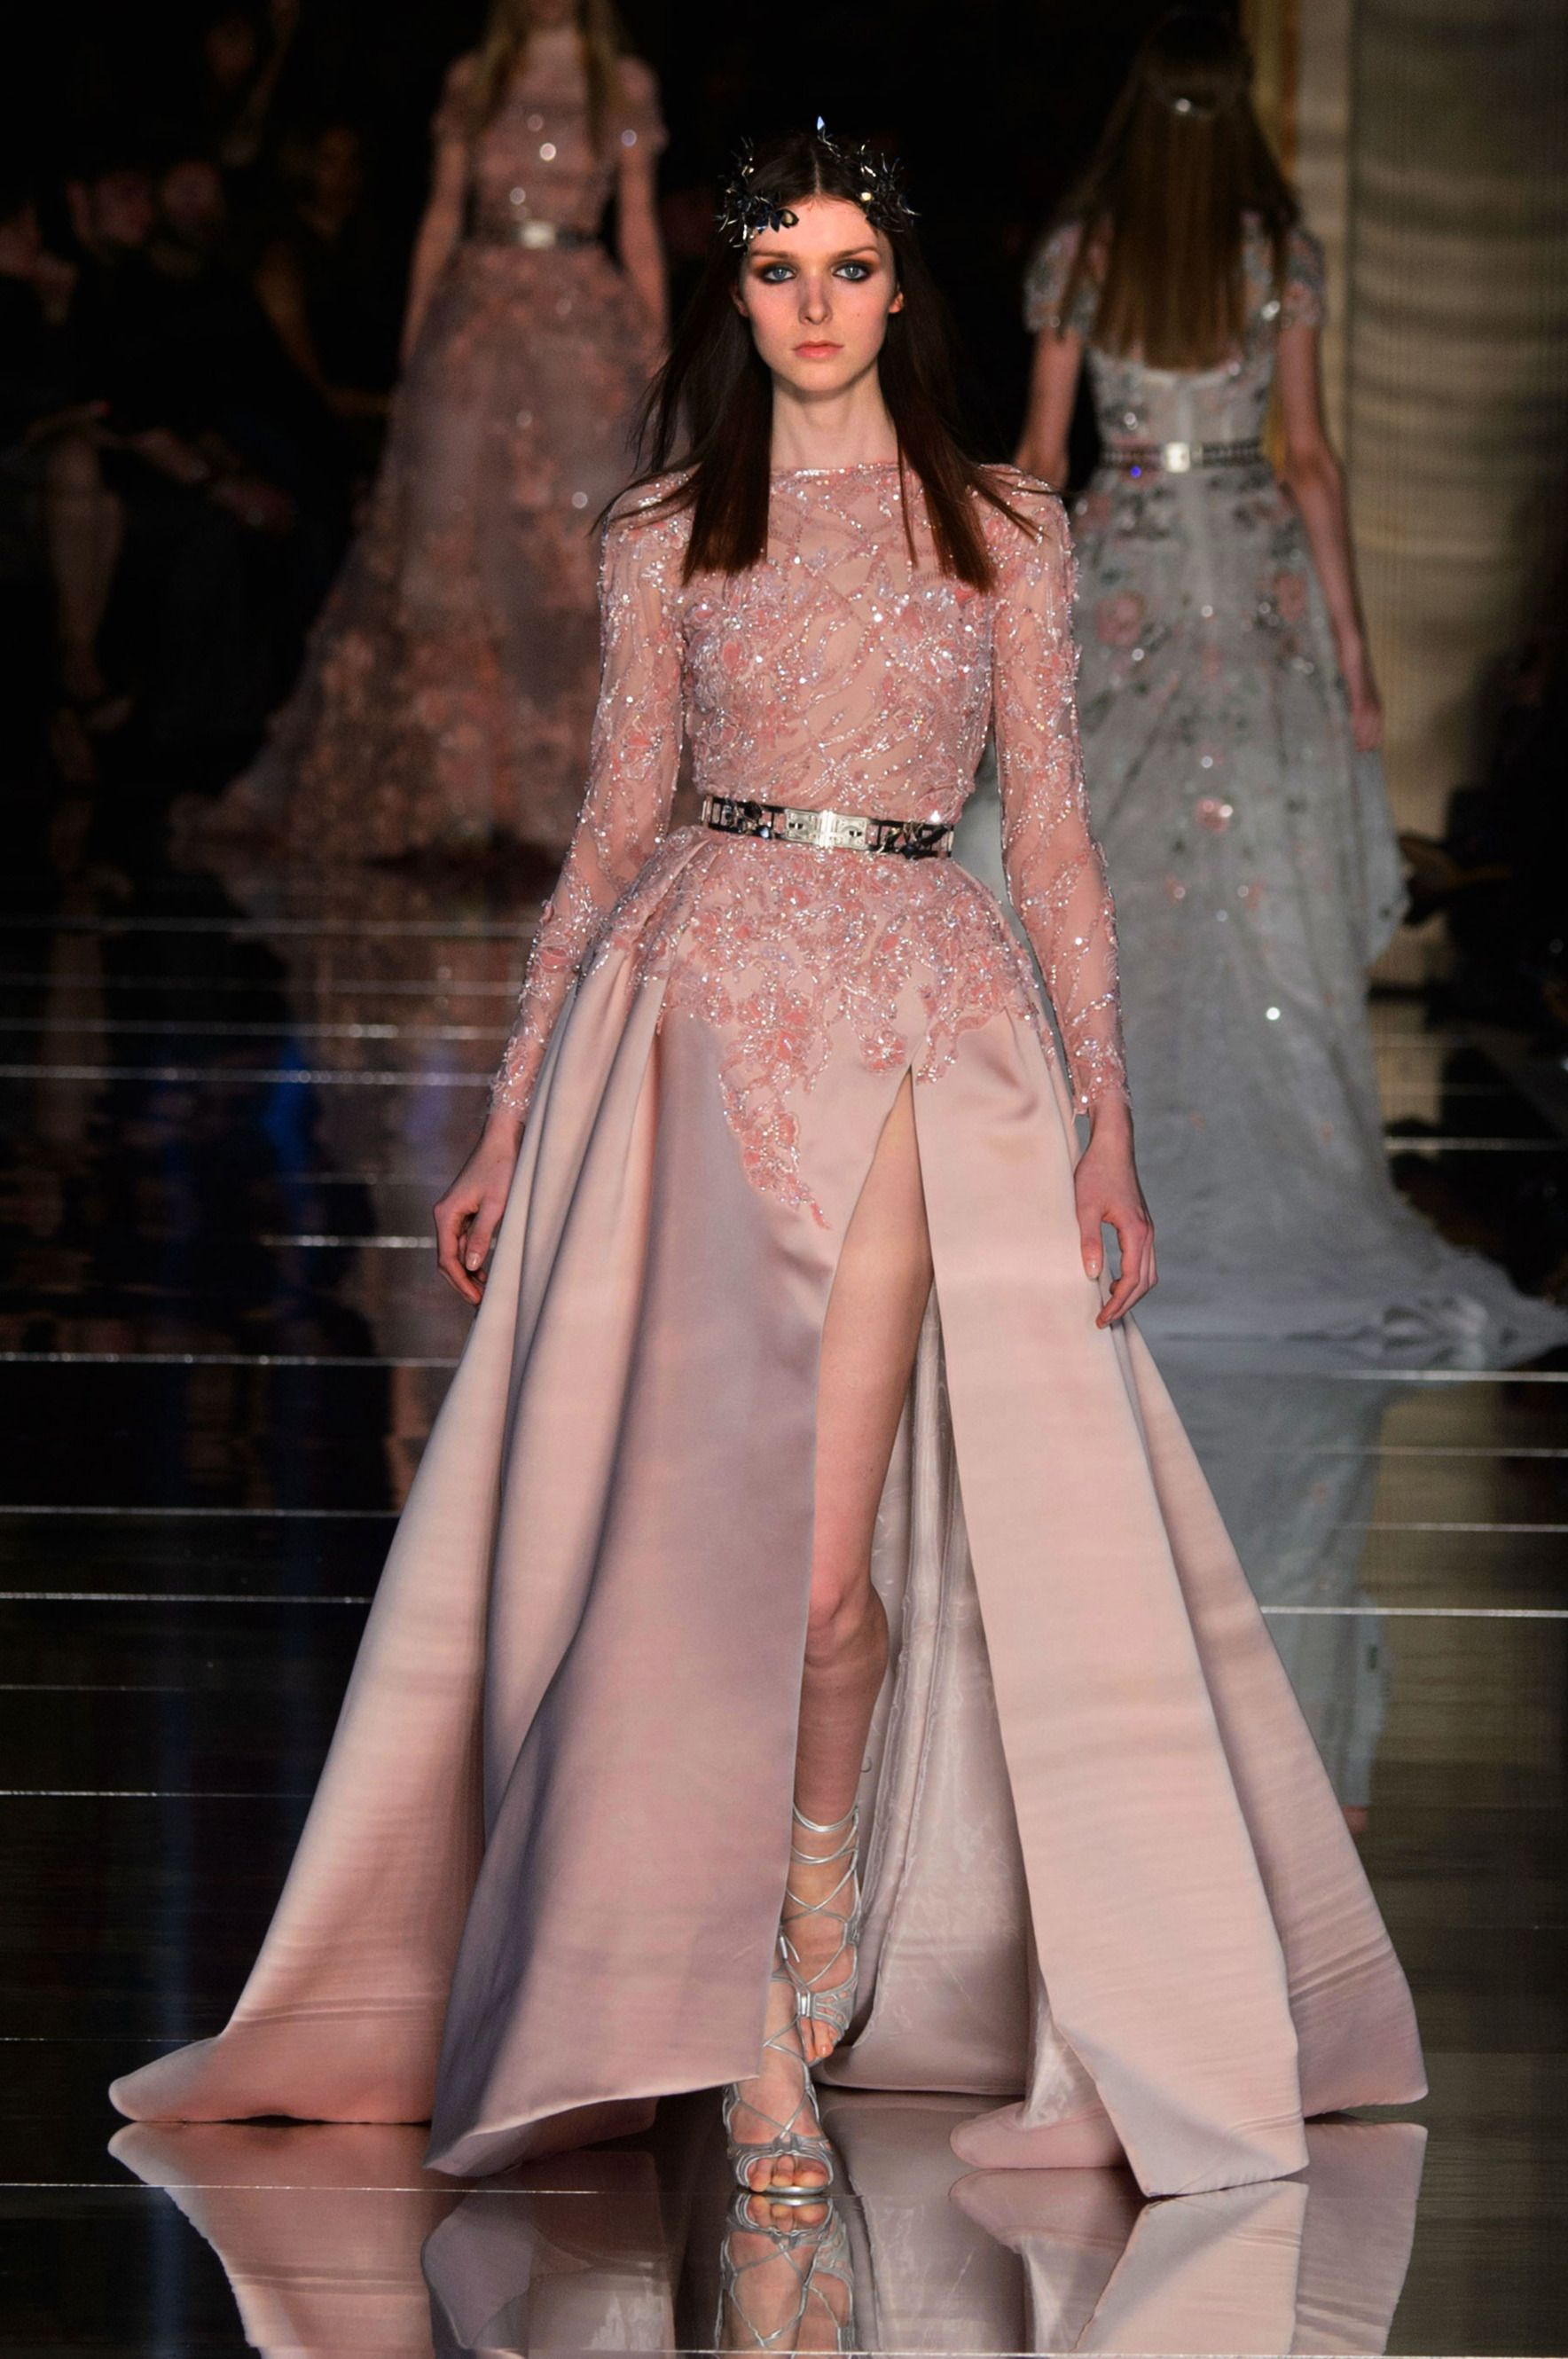 bcce15fc390f SPRING 2016 COUTURE ZUHAIR MURAD COLLECTION